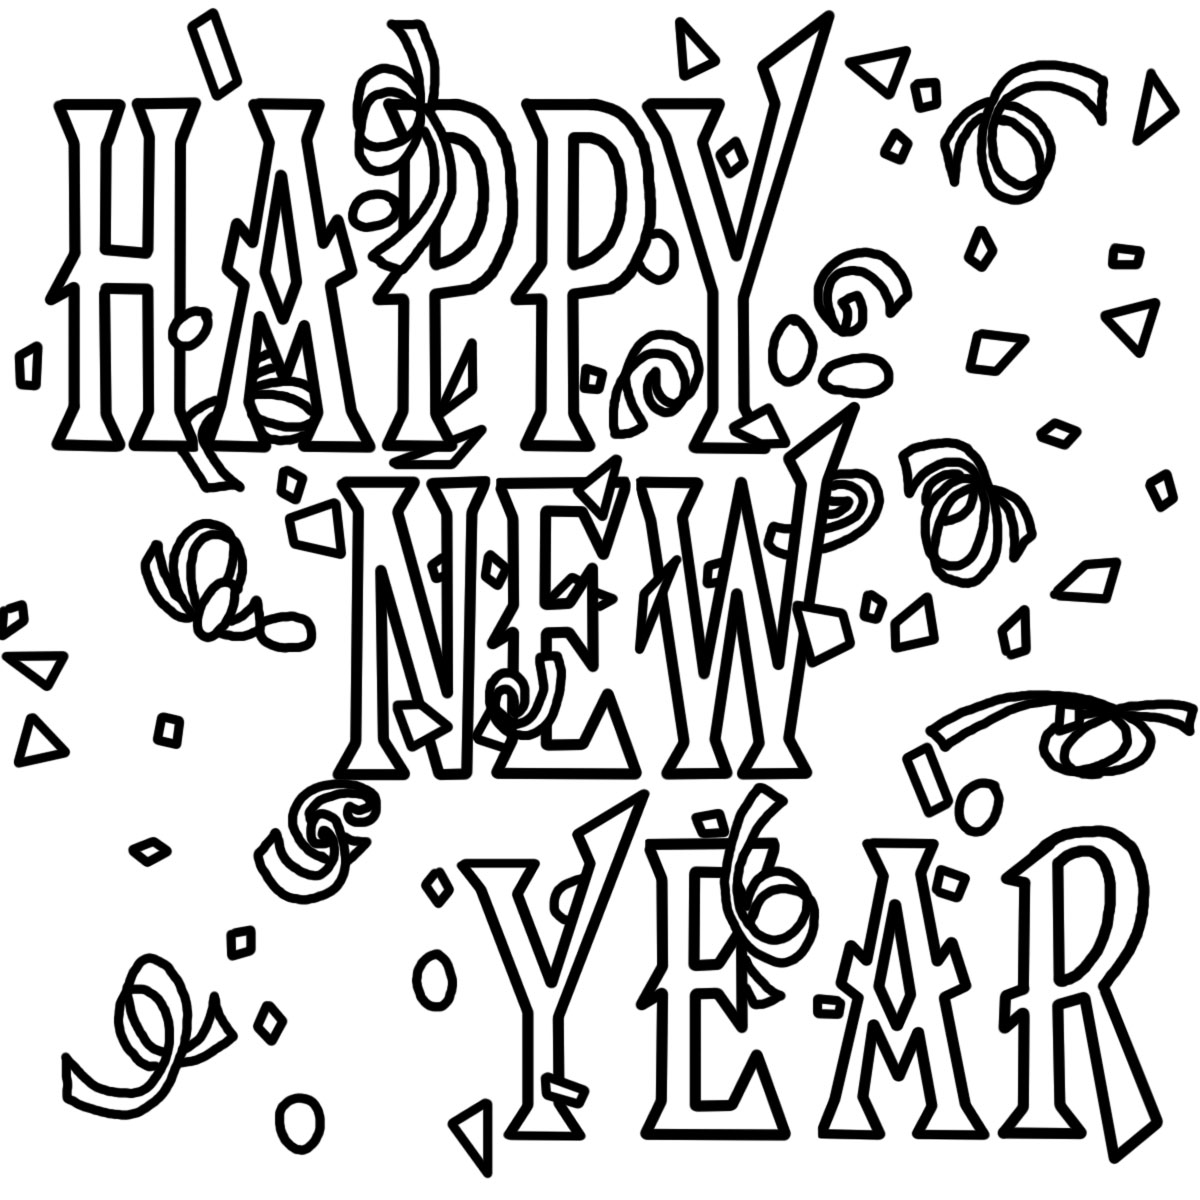 merry christmas and happy new year clip art black and white.